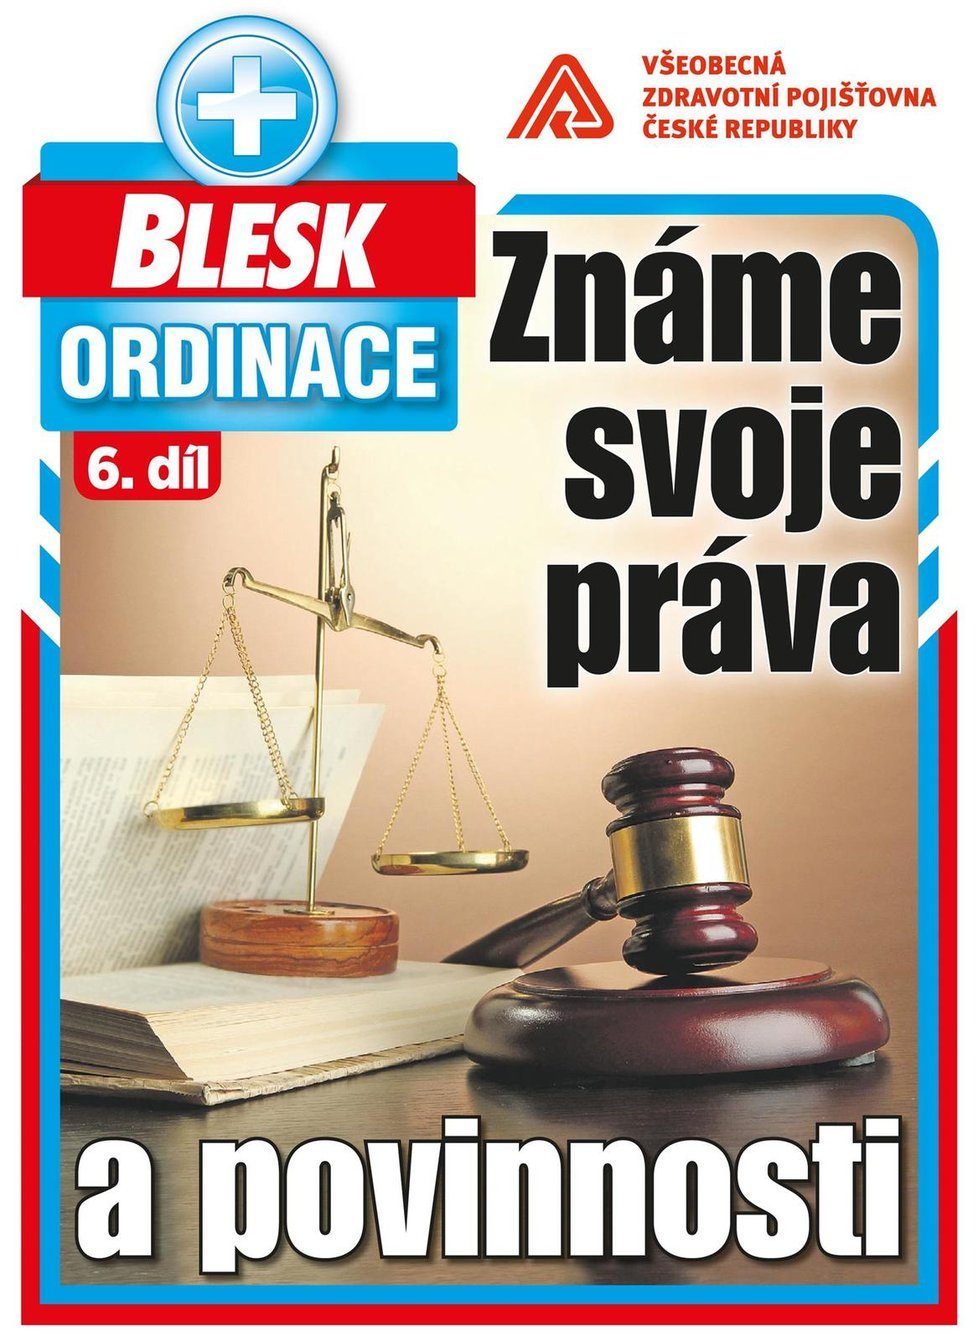 Attention, already on Monday for free in the daily Blesk průvodce We know our rights